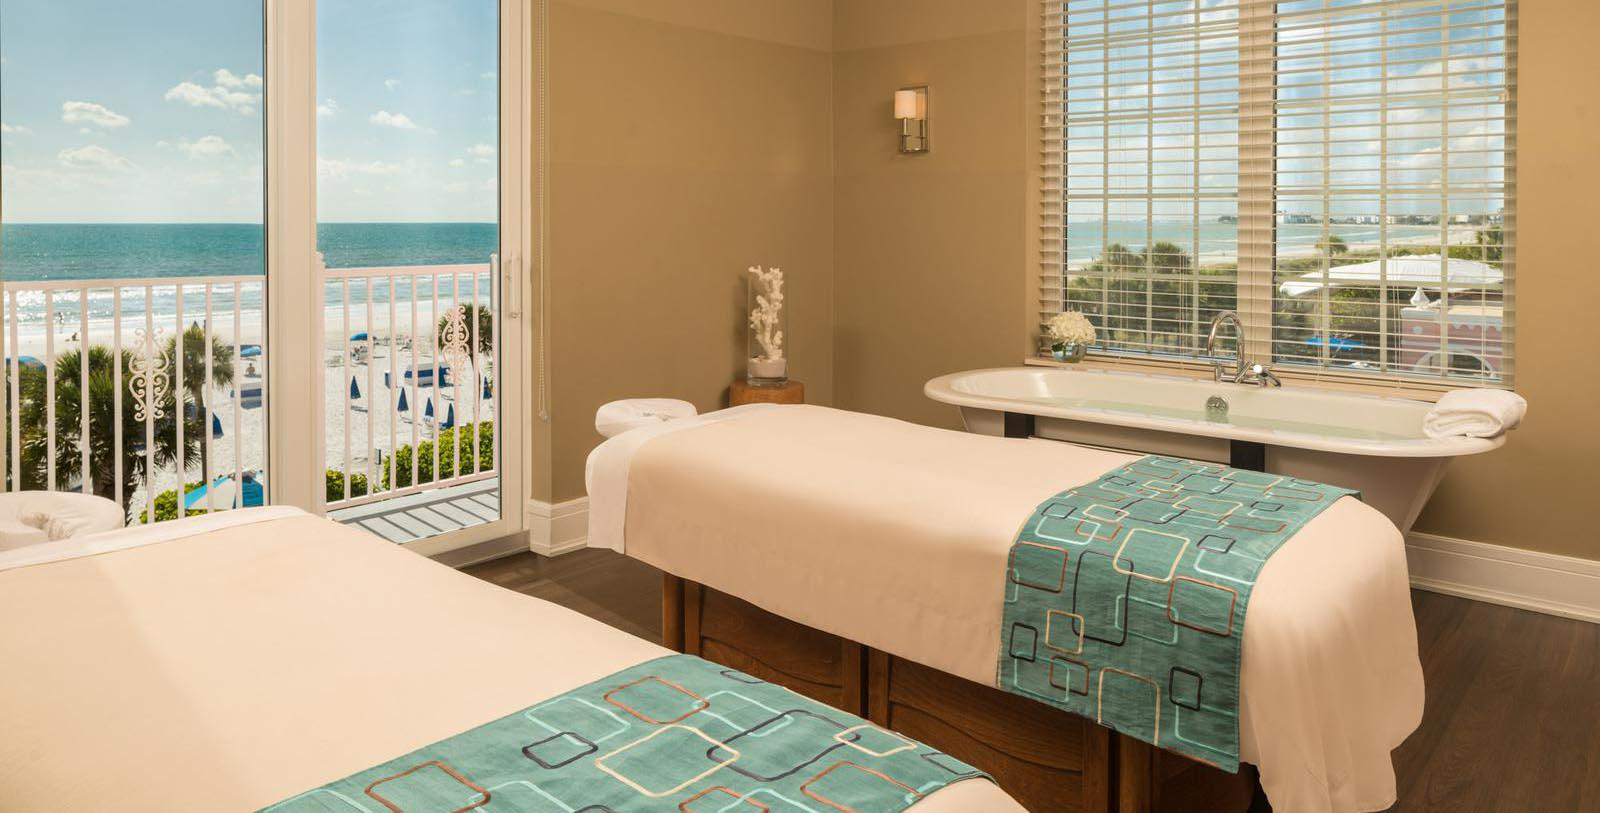 Image of Spa The Don CeSar, 1928, Member of Historic Hotels of America, in St. Petersburg, Florida, Hot Deals